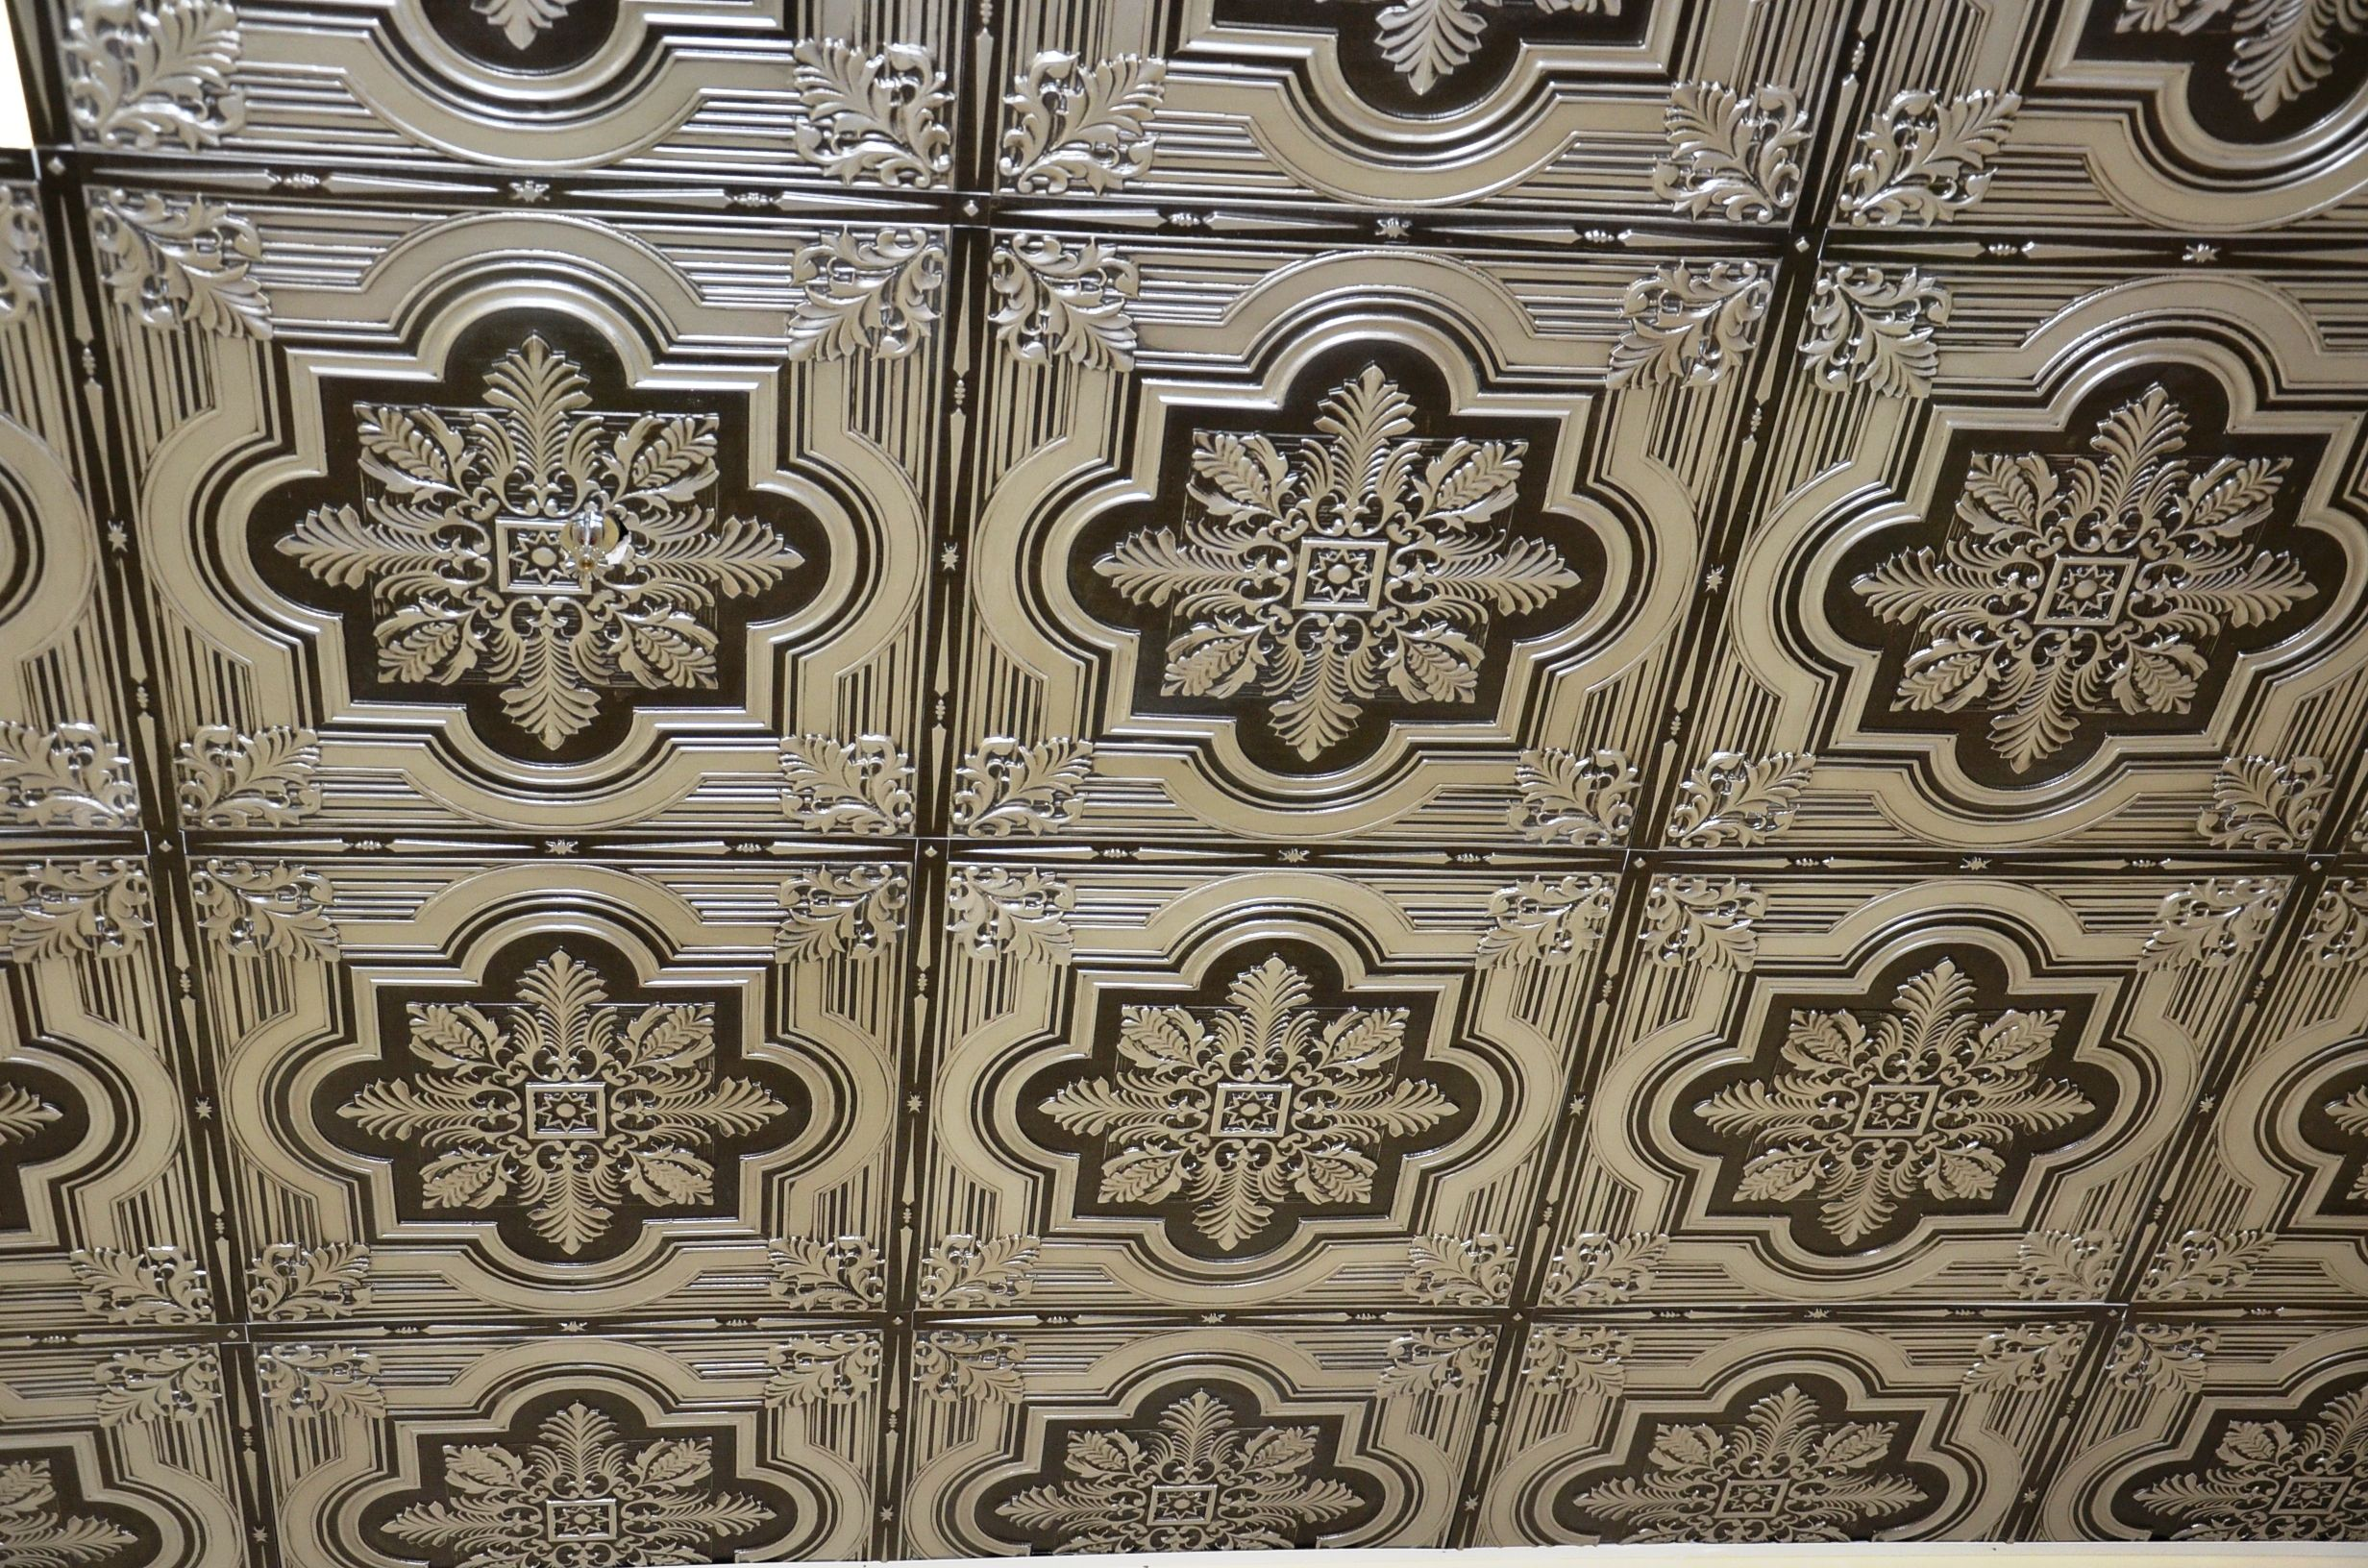 tiles inc polyurethane s page clients blog category lorton virginia projects crown decorative my ceilings molding ceiling tile